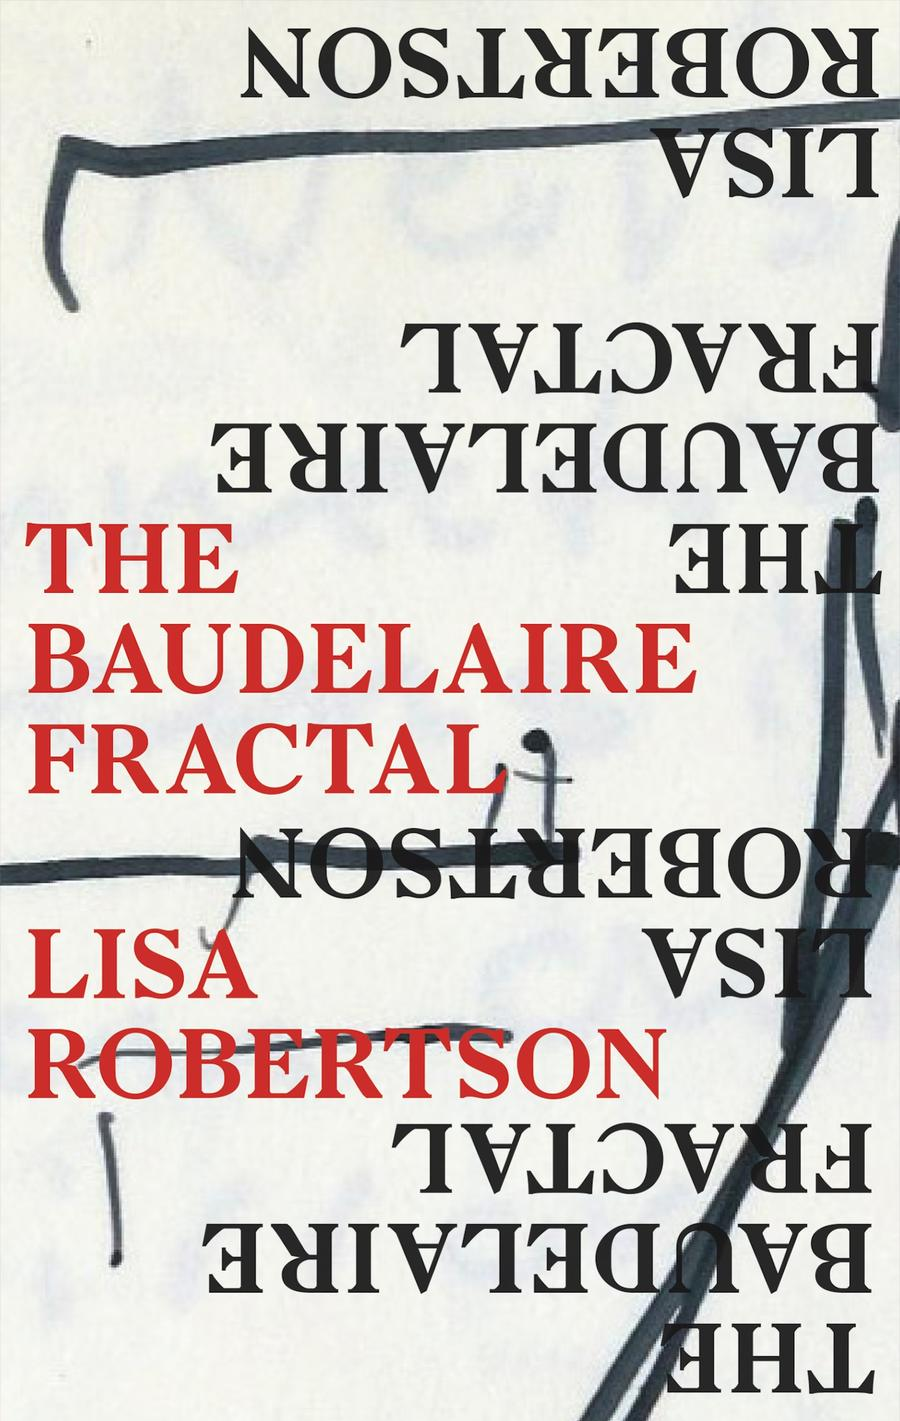 Book Launch: The Baudelaire Fractal by Lisa Robertson in conversation with Hildebrand Pam Dick